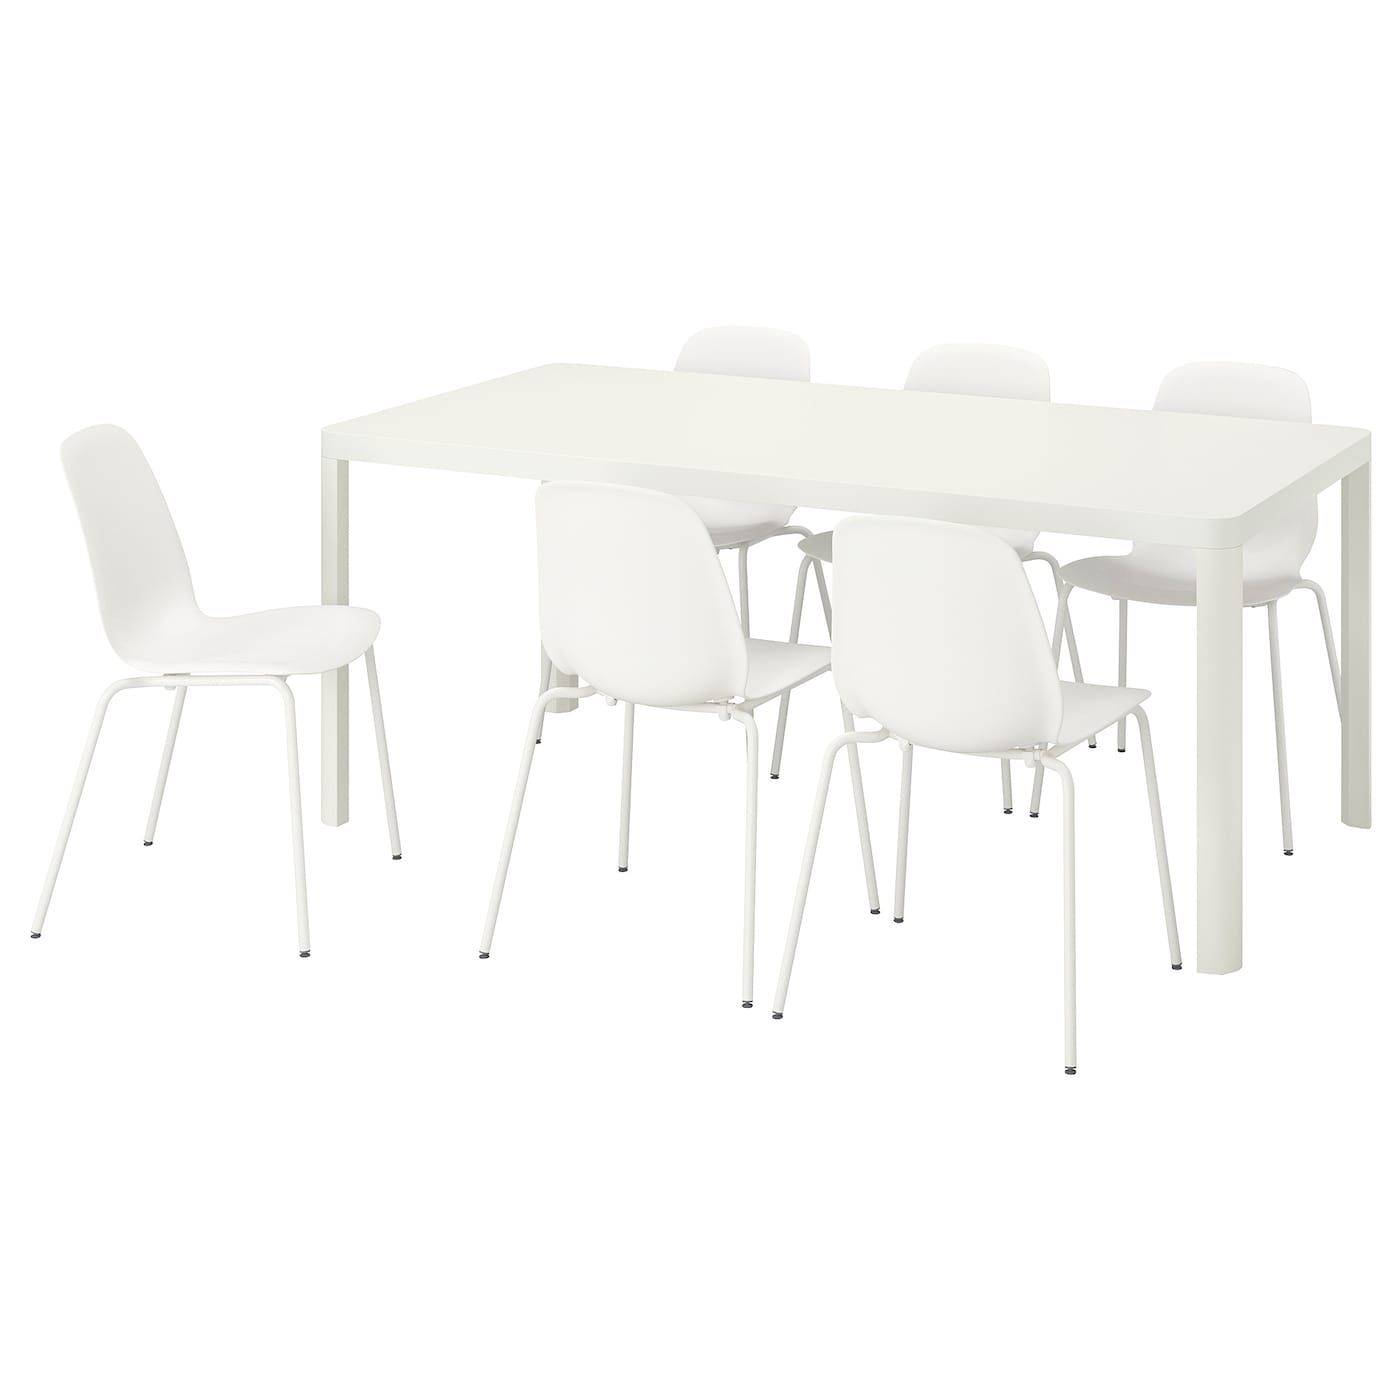 Ikea Tingby Leifarne White White Table And 6 Chairs Table